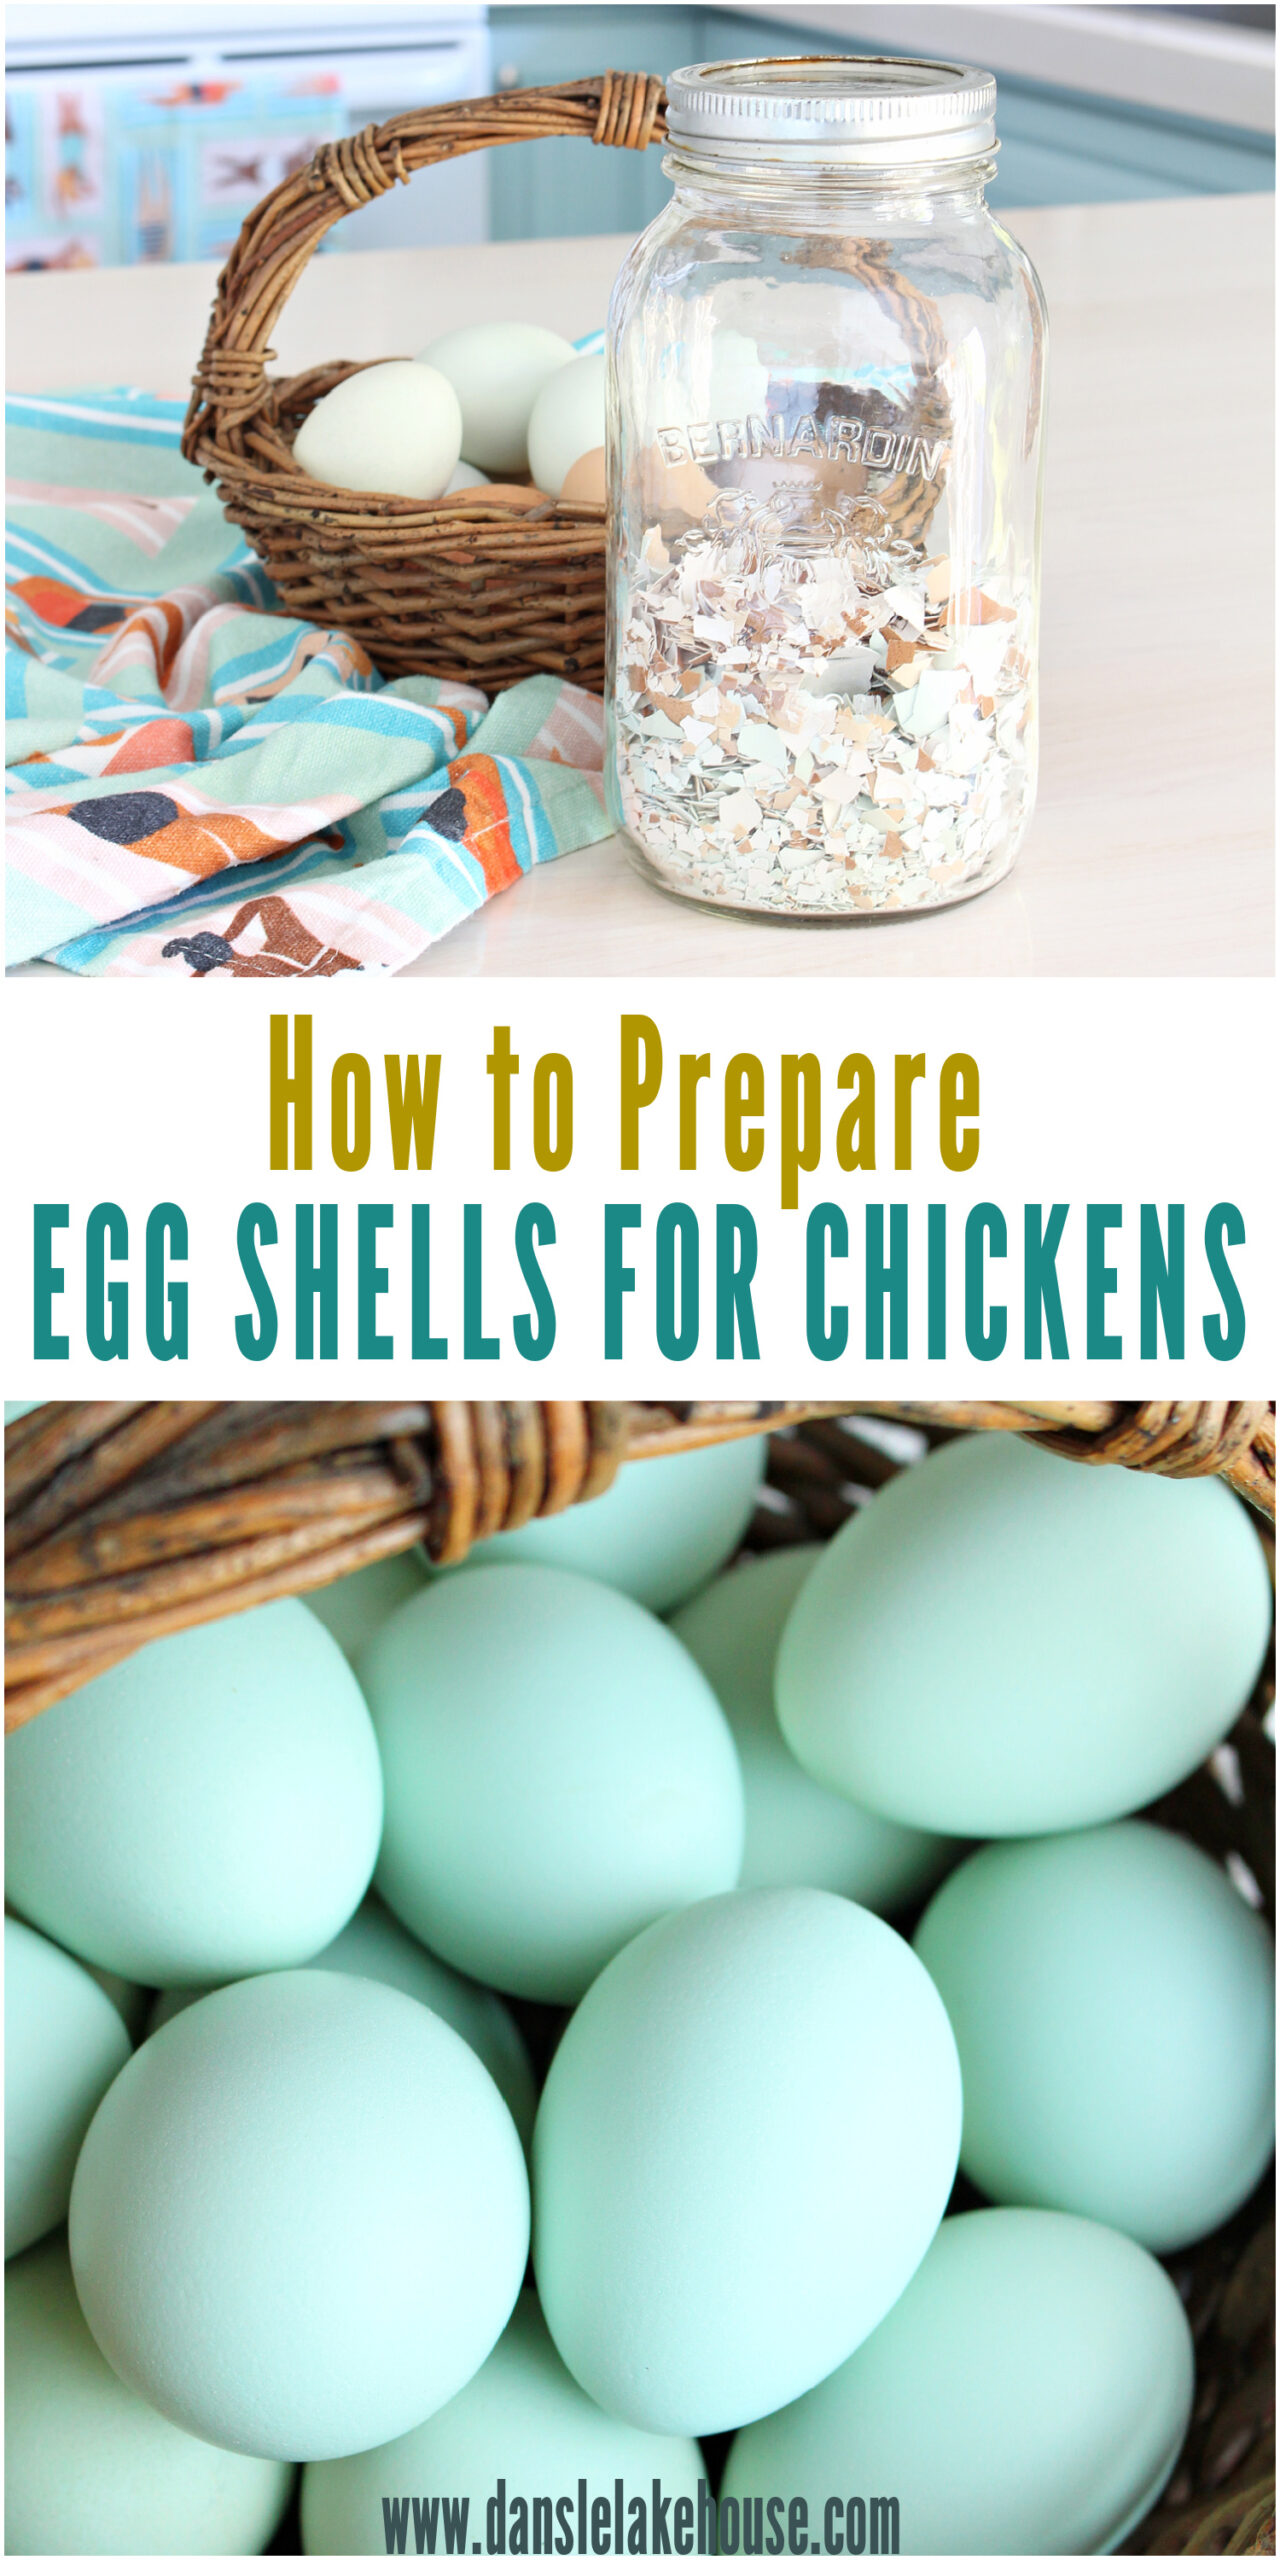 How to prepare egg shells for chickens